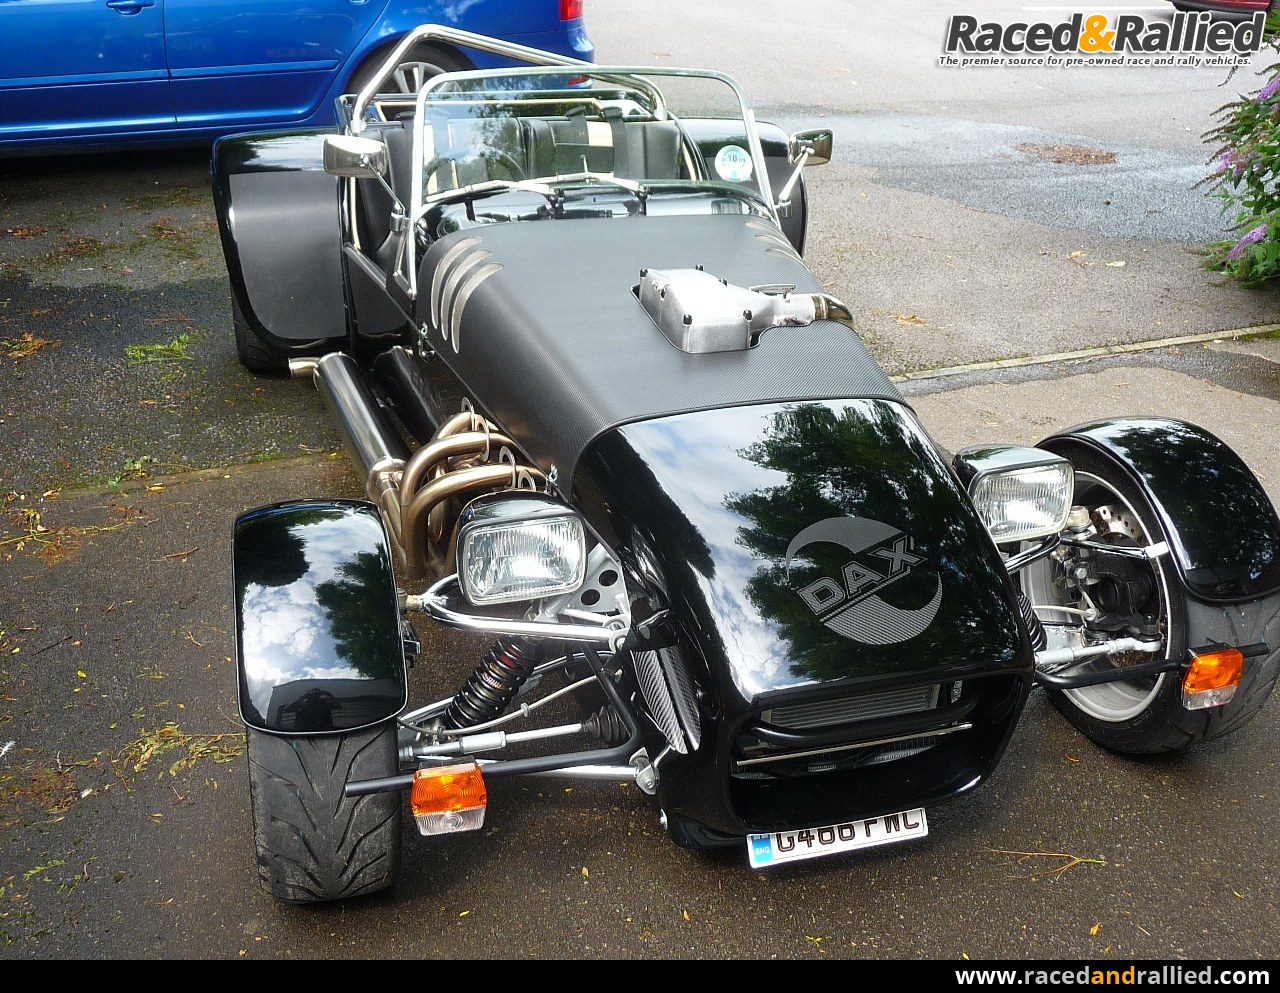 2009 Dax Rush V8 EFI | Kit Cars for sale at Raced & Rallied | rally